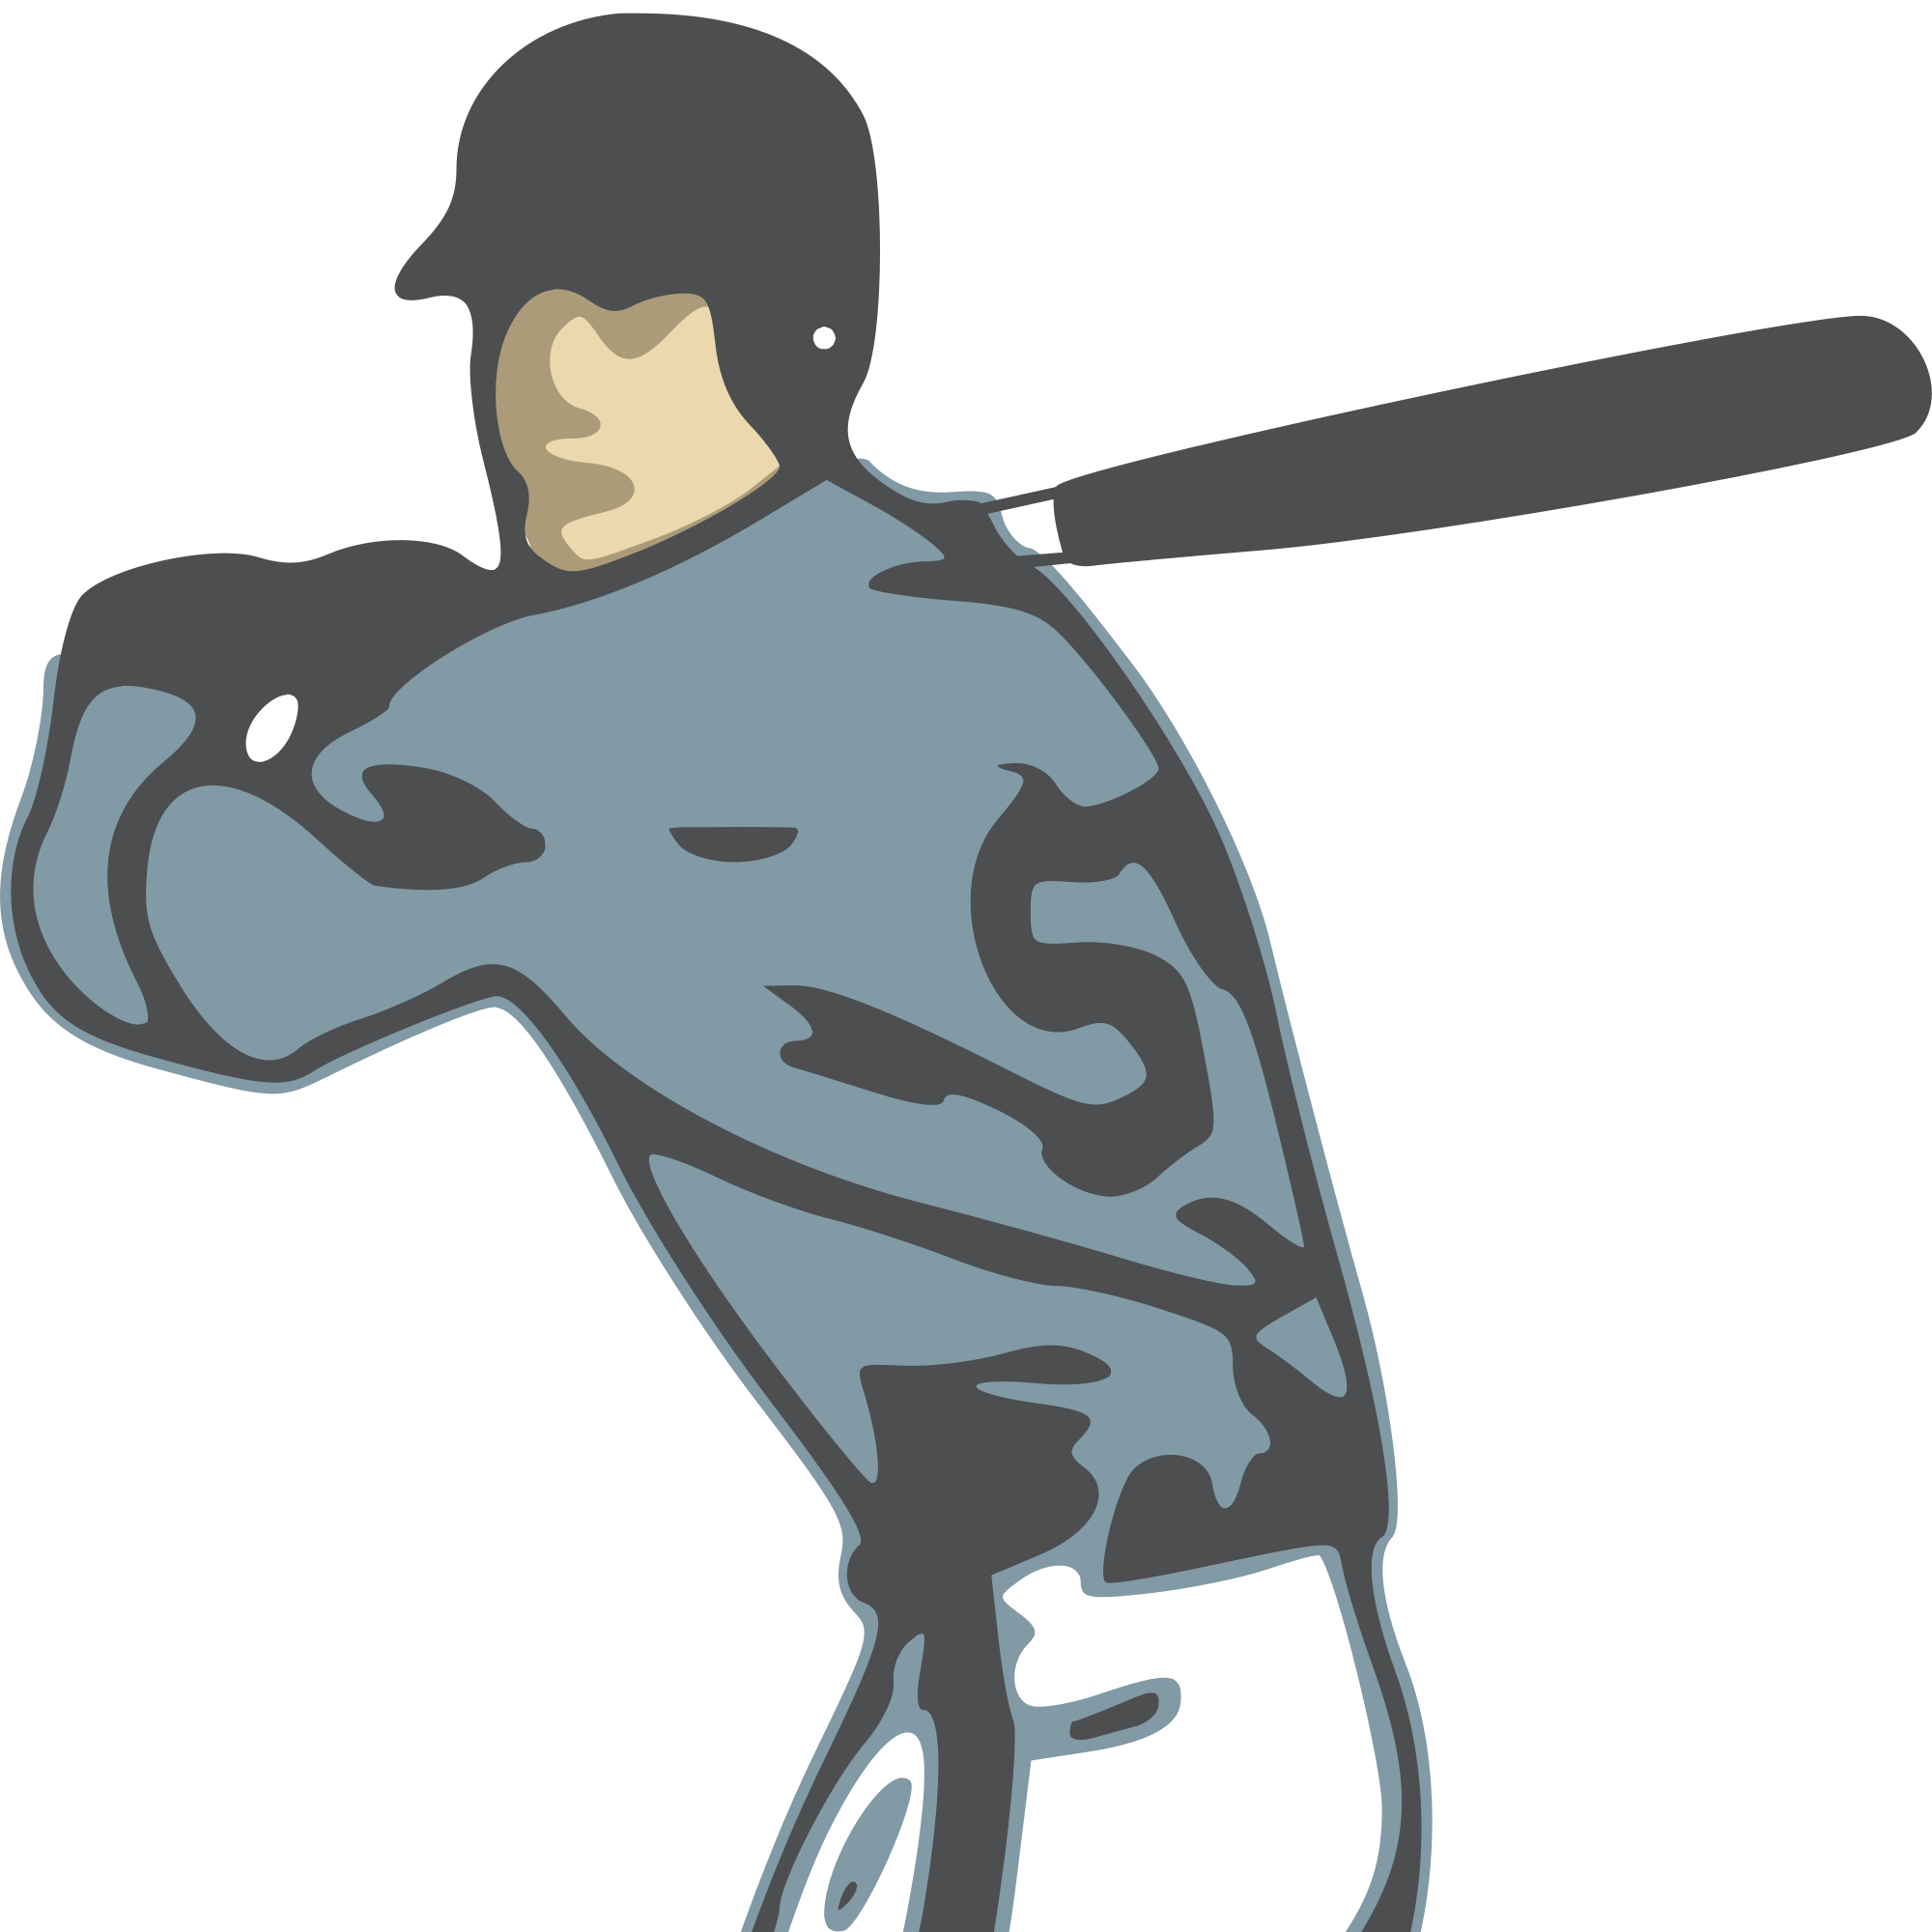 Baseball free clipart clip free library Baseball Batter Clipart at GetDrawings.com | Free for personal use ... clip free library